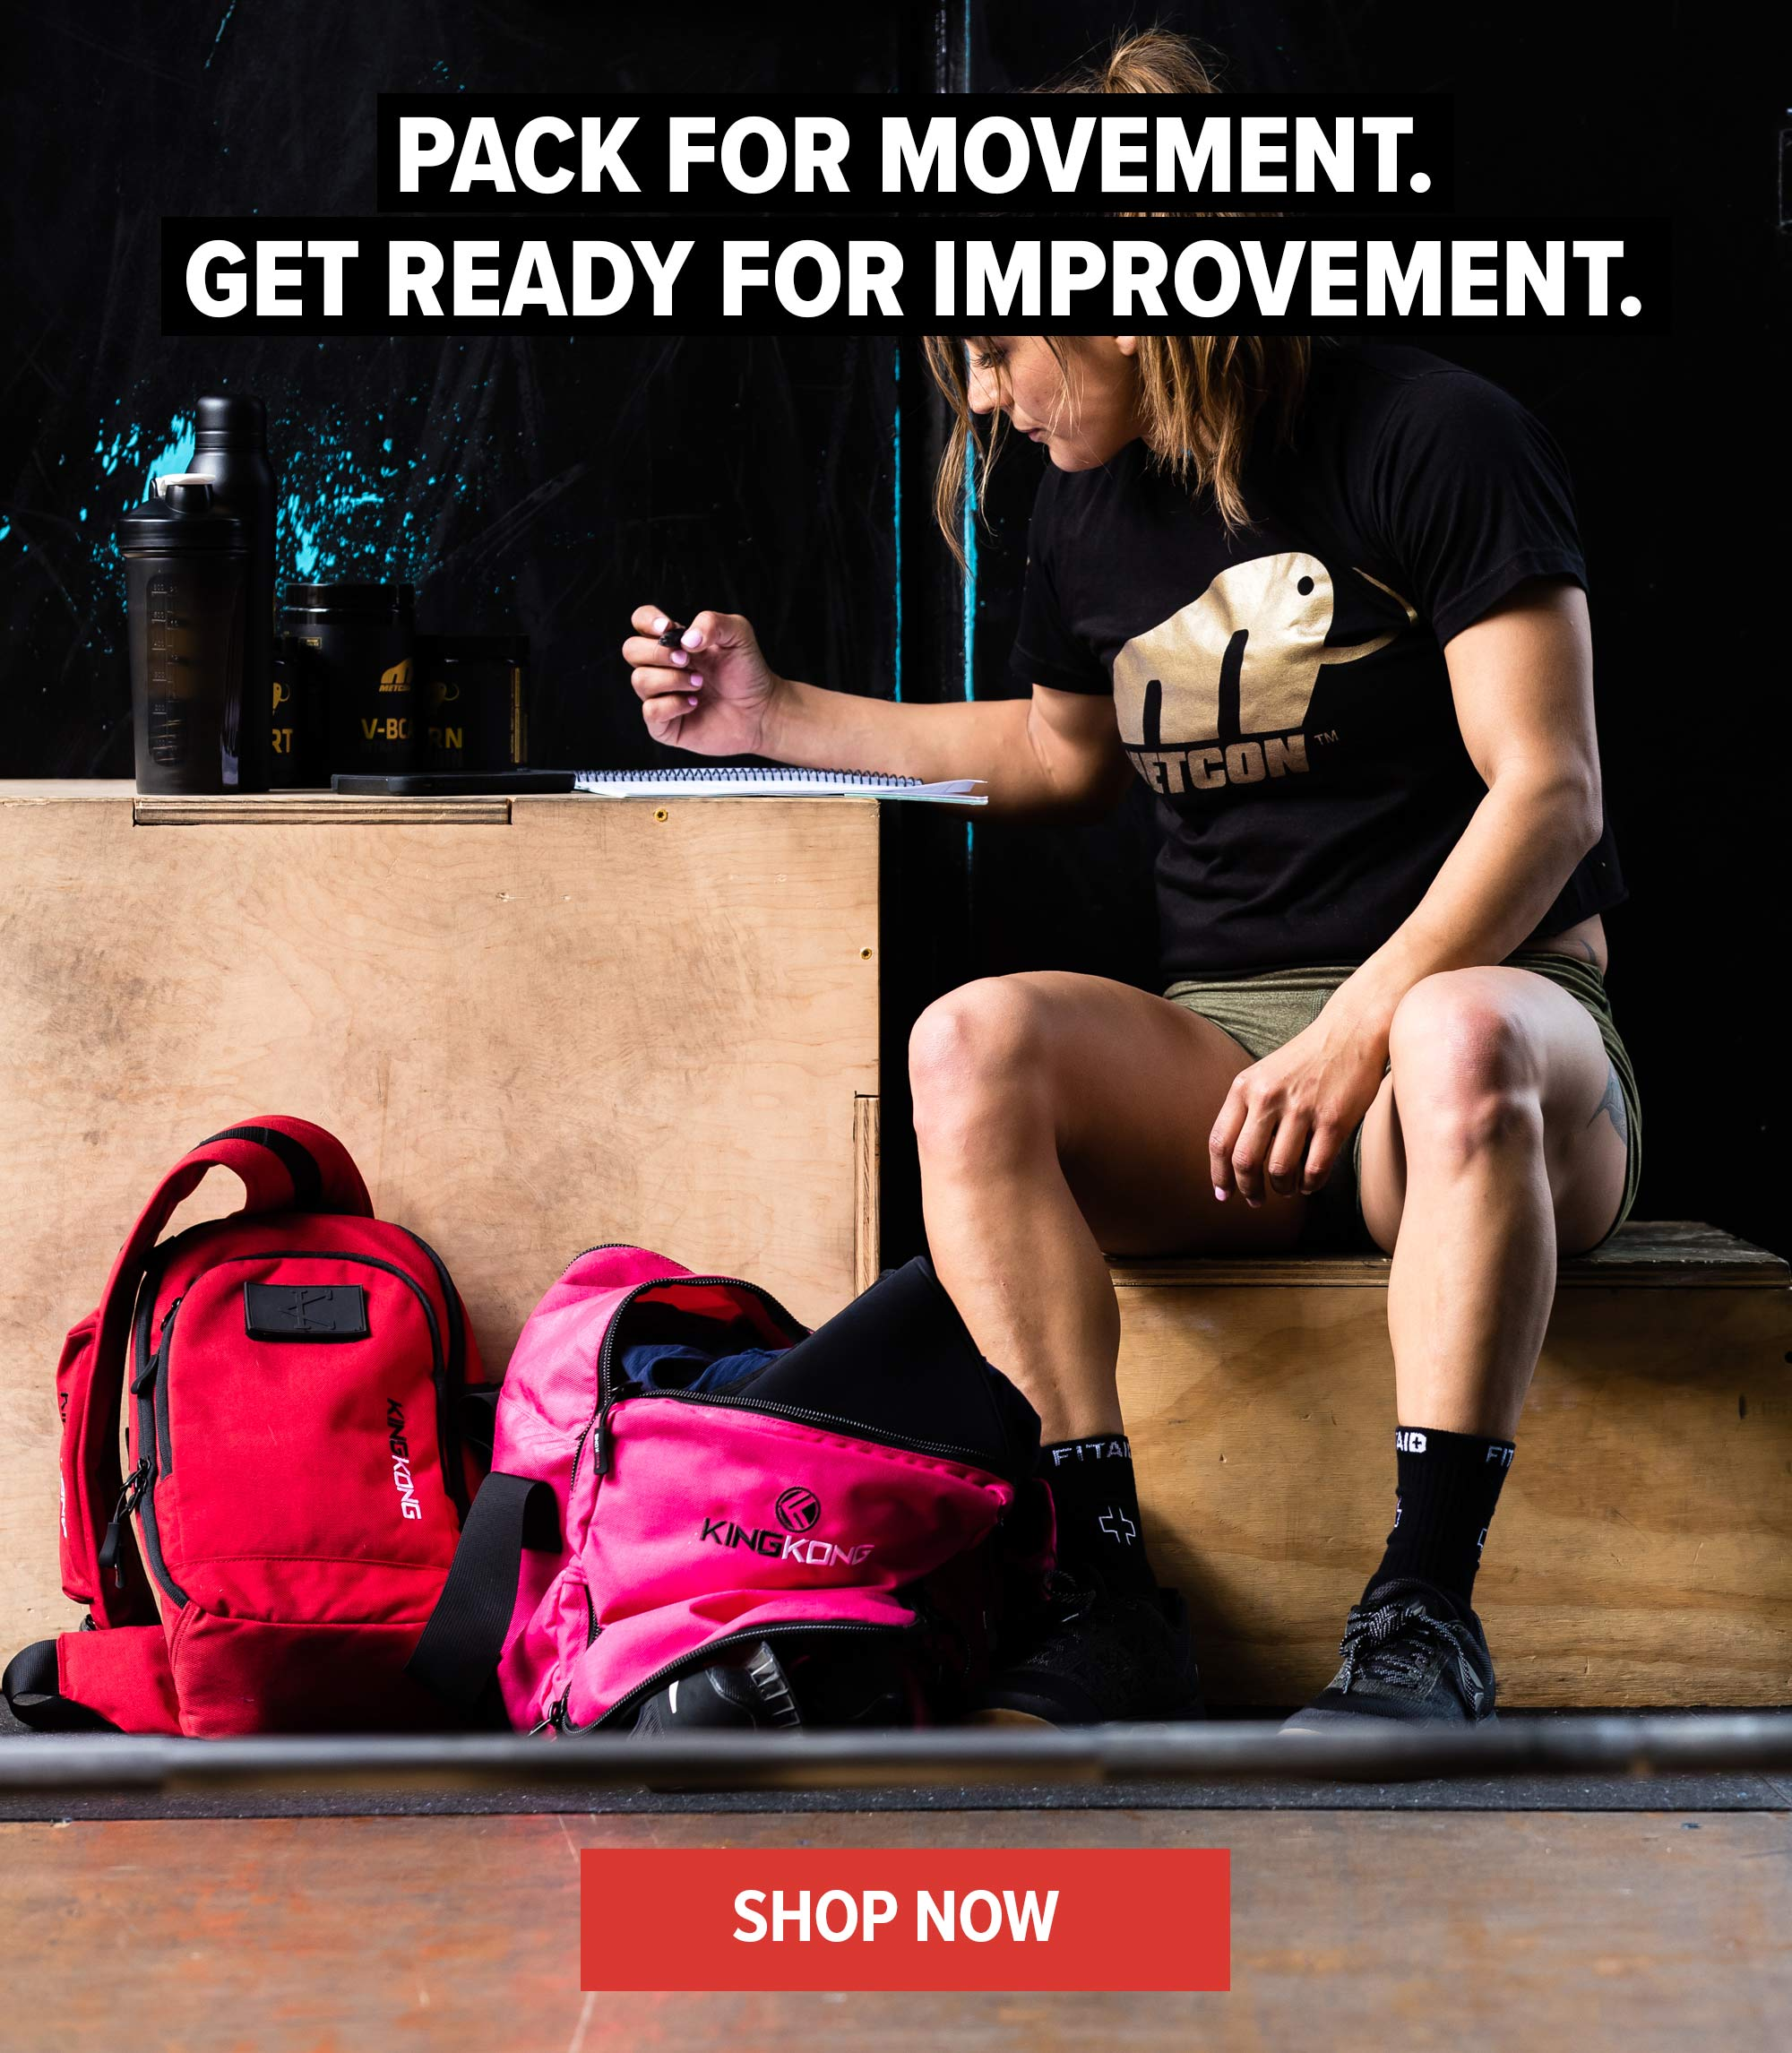 Pack for movement. Get ready for improvement.